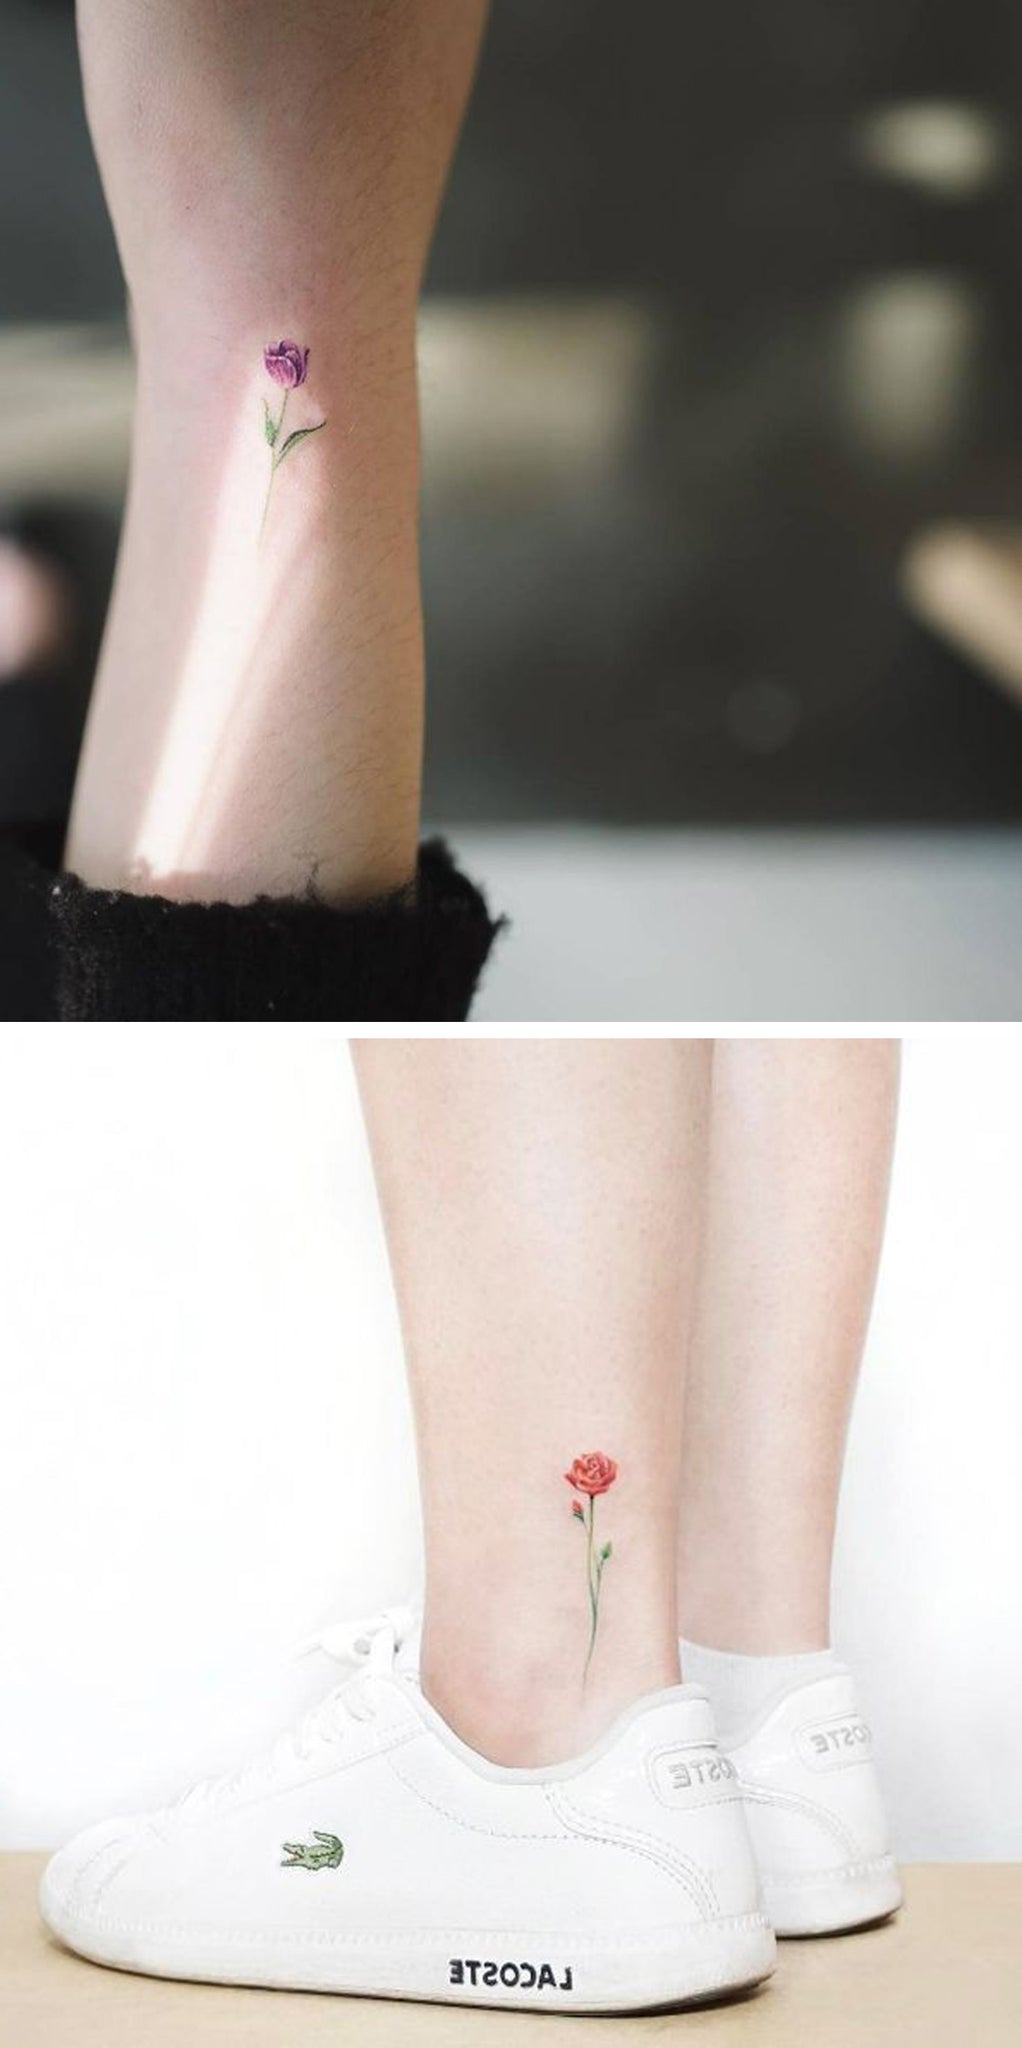 Tiny Watercolor Flower Ankle Tattoo Ideas - Colorful Rose Wrist Tatt - MyBodiArt.com